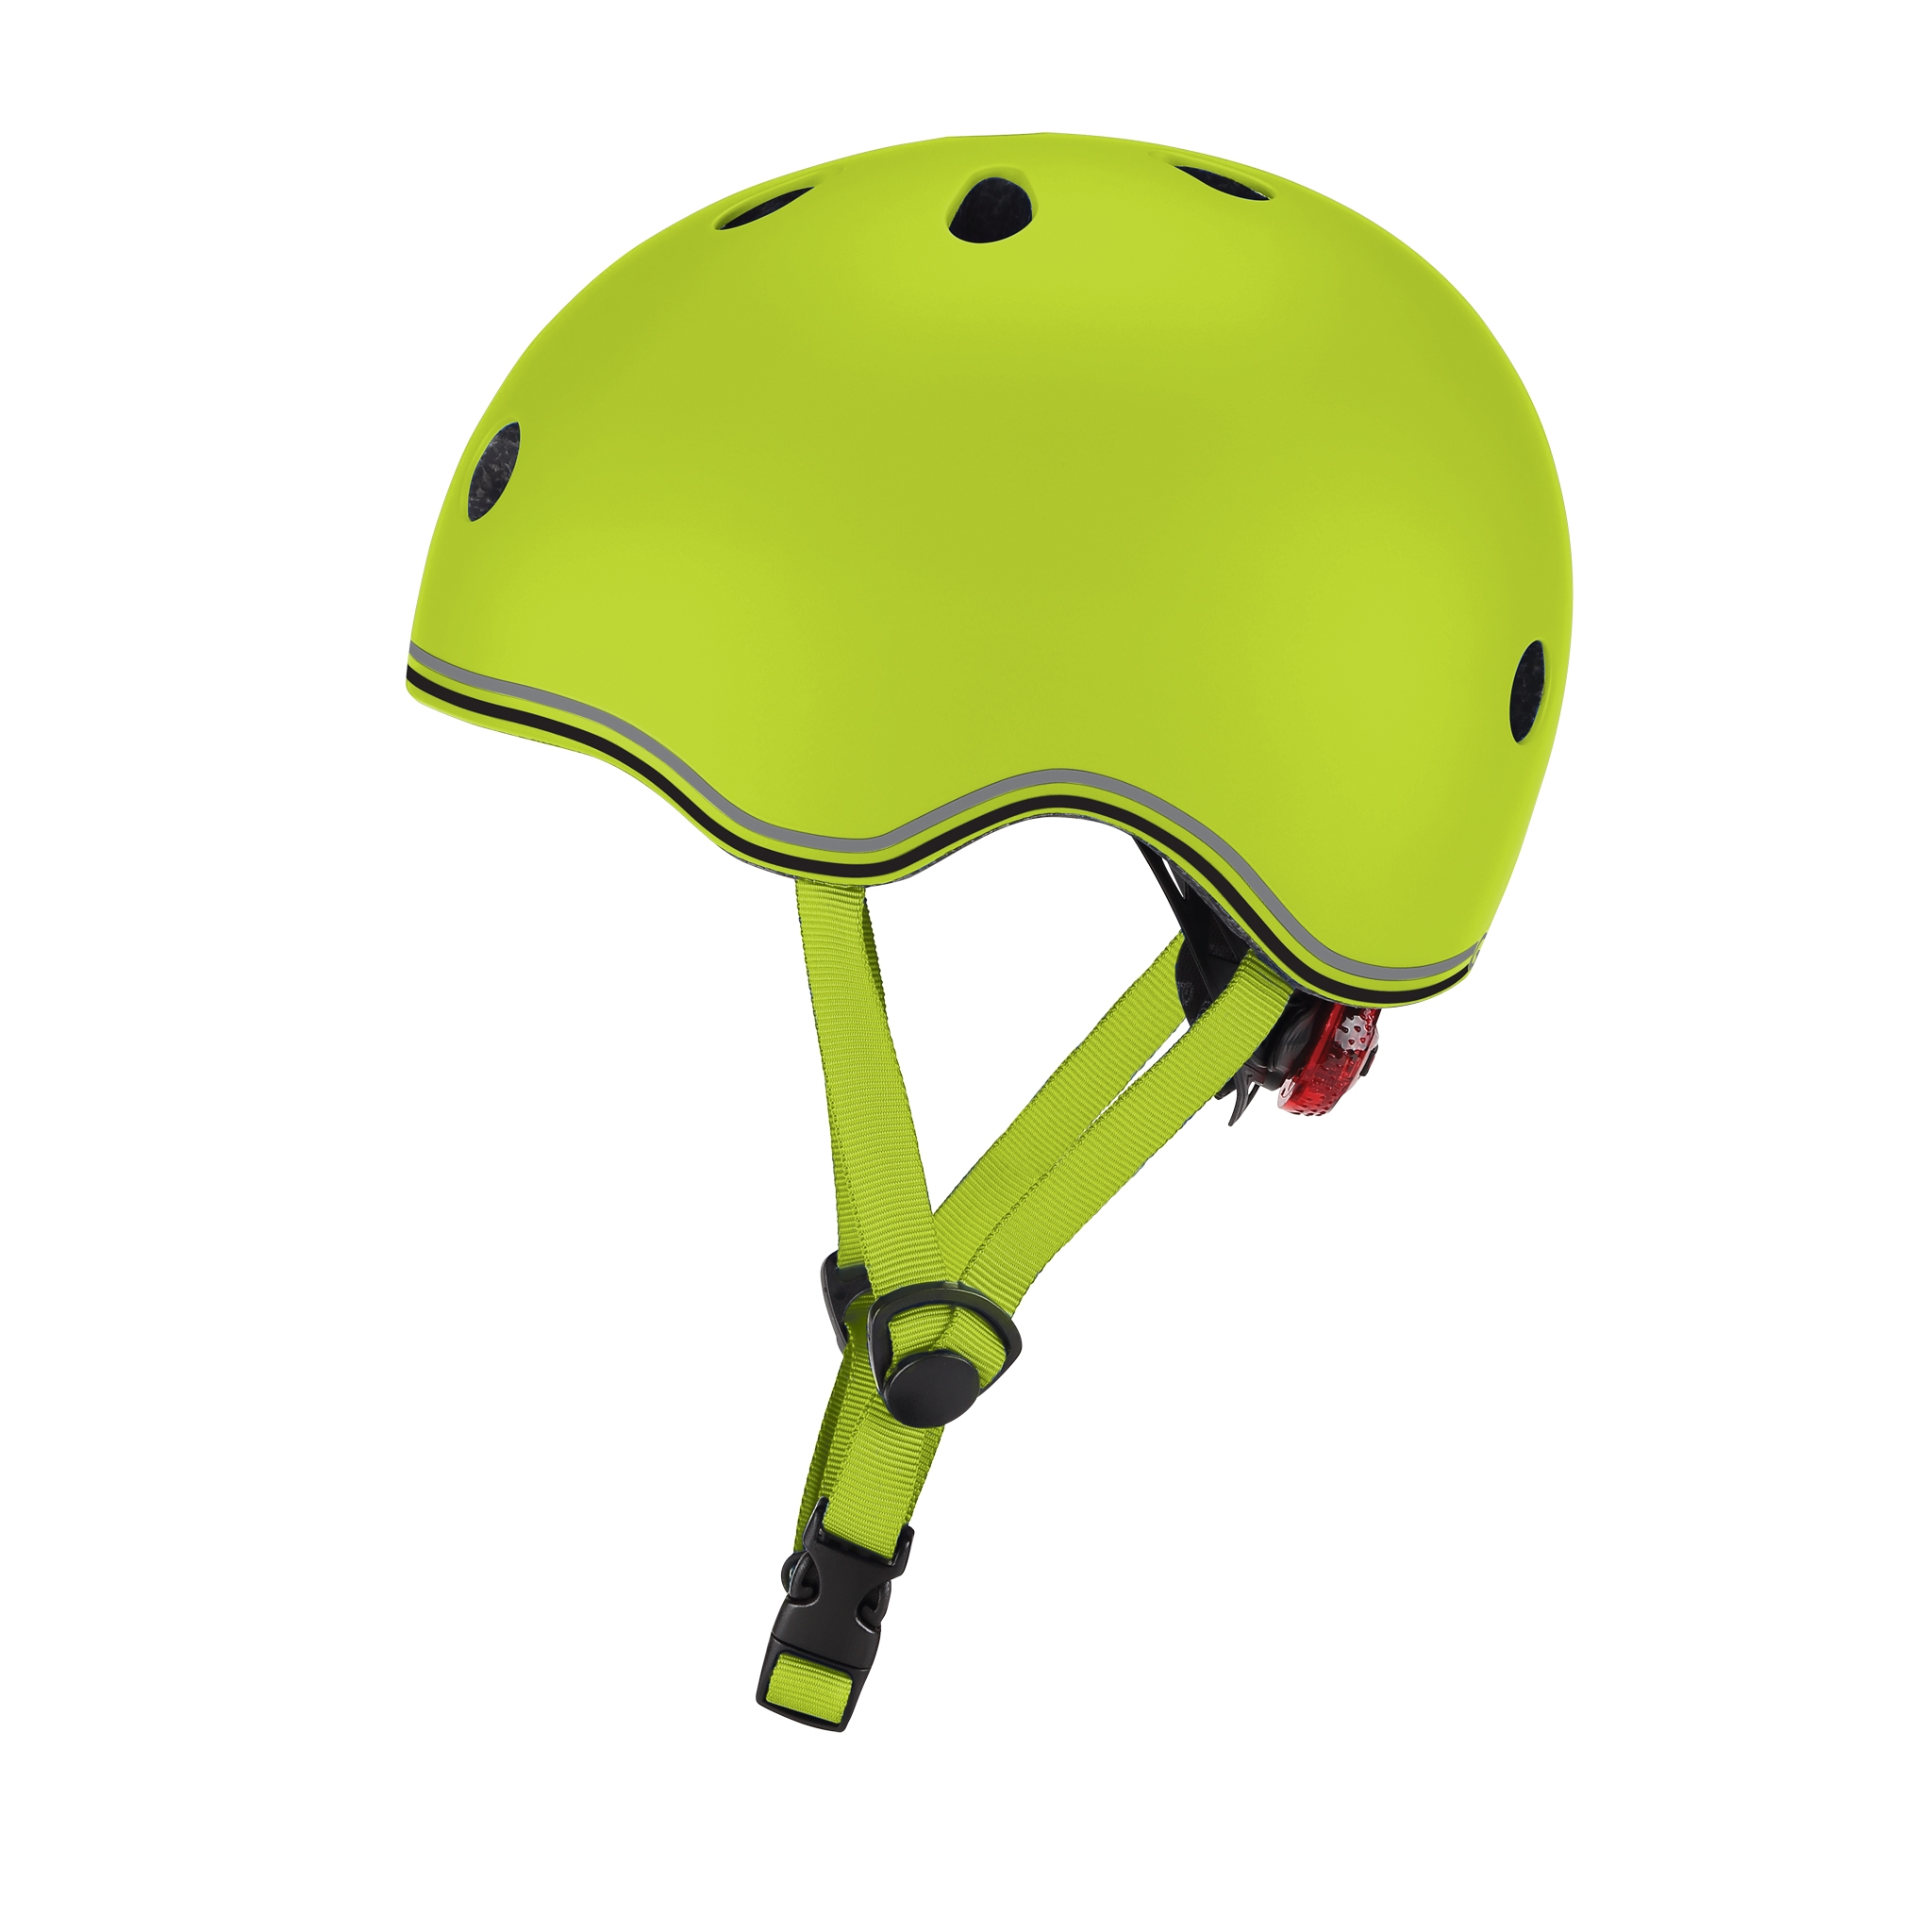 EVO-helmets-scooter-helmets-for-toddlers-with-adjustable-helmet-knob-lime-green 1